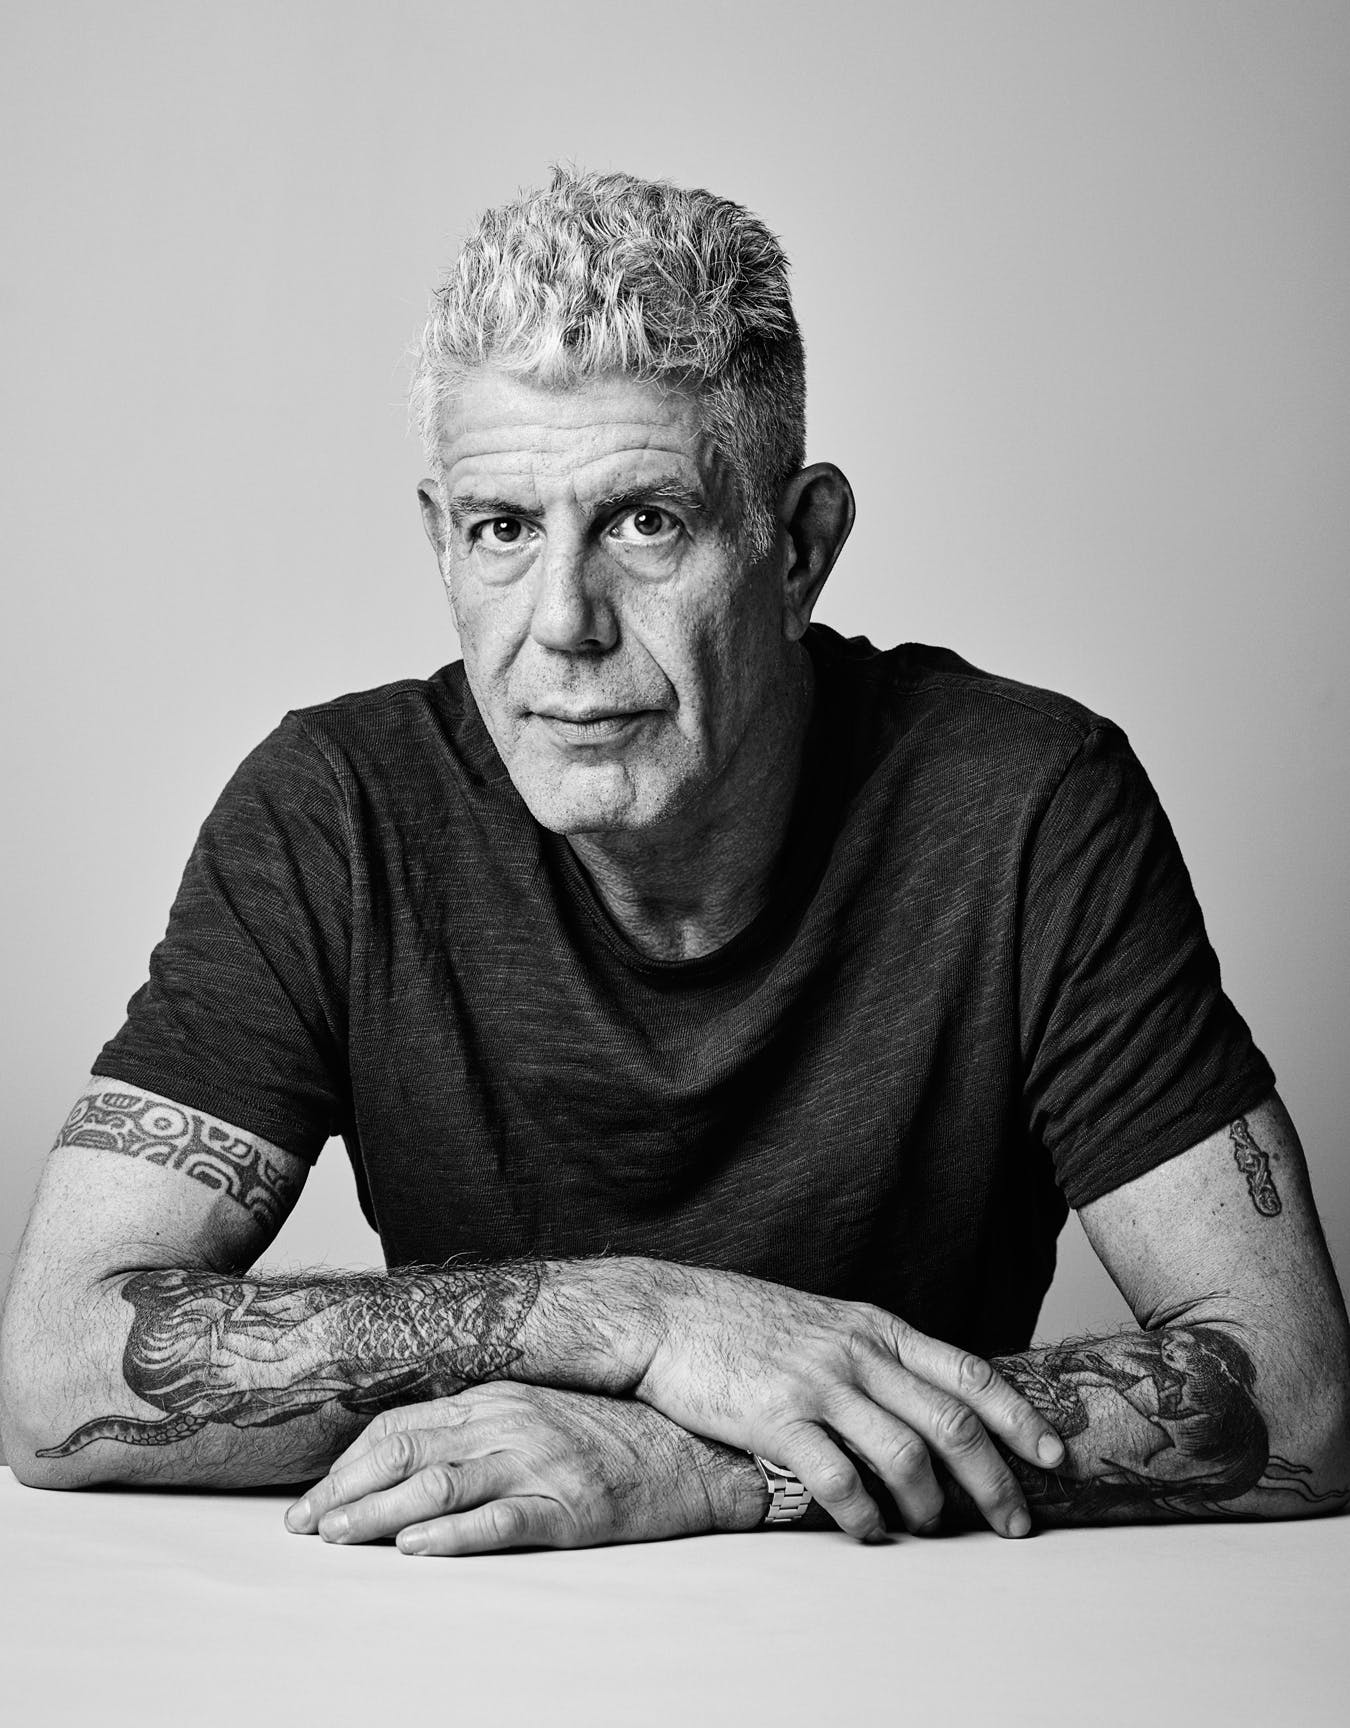 WHAT KILLED ANTHONY BOURDAIN?